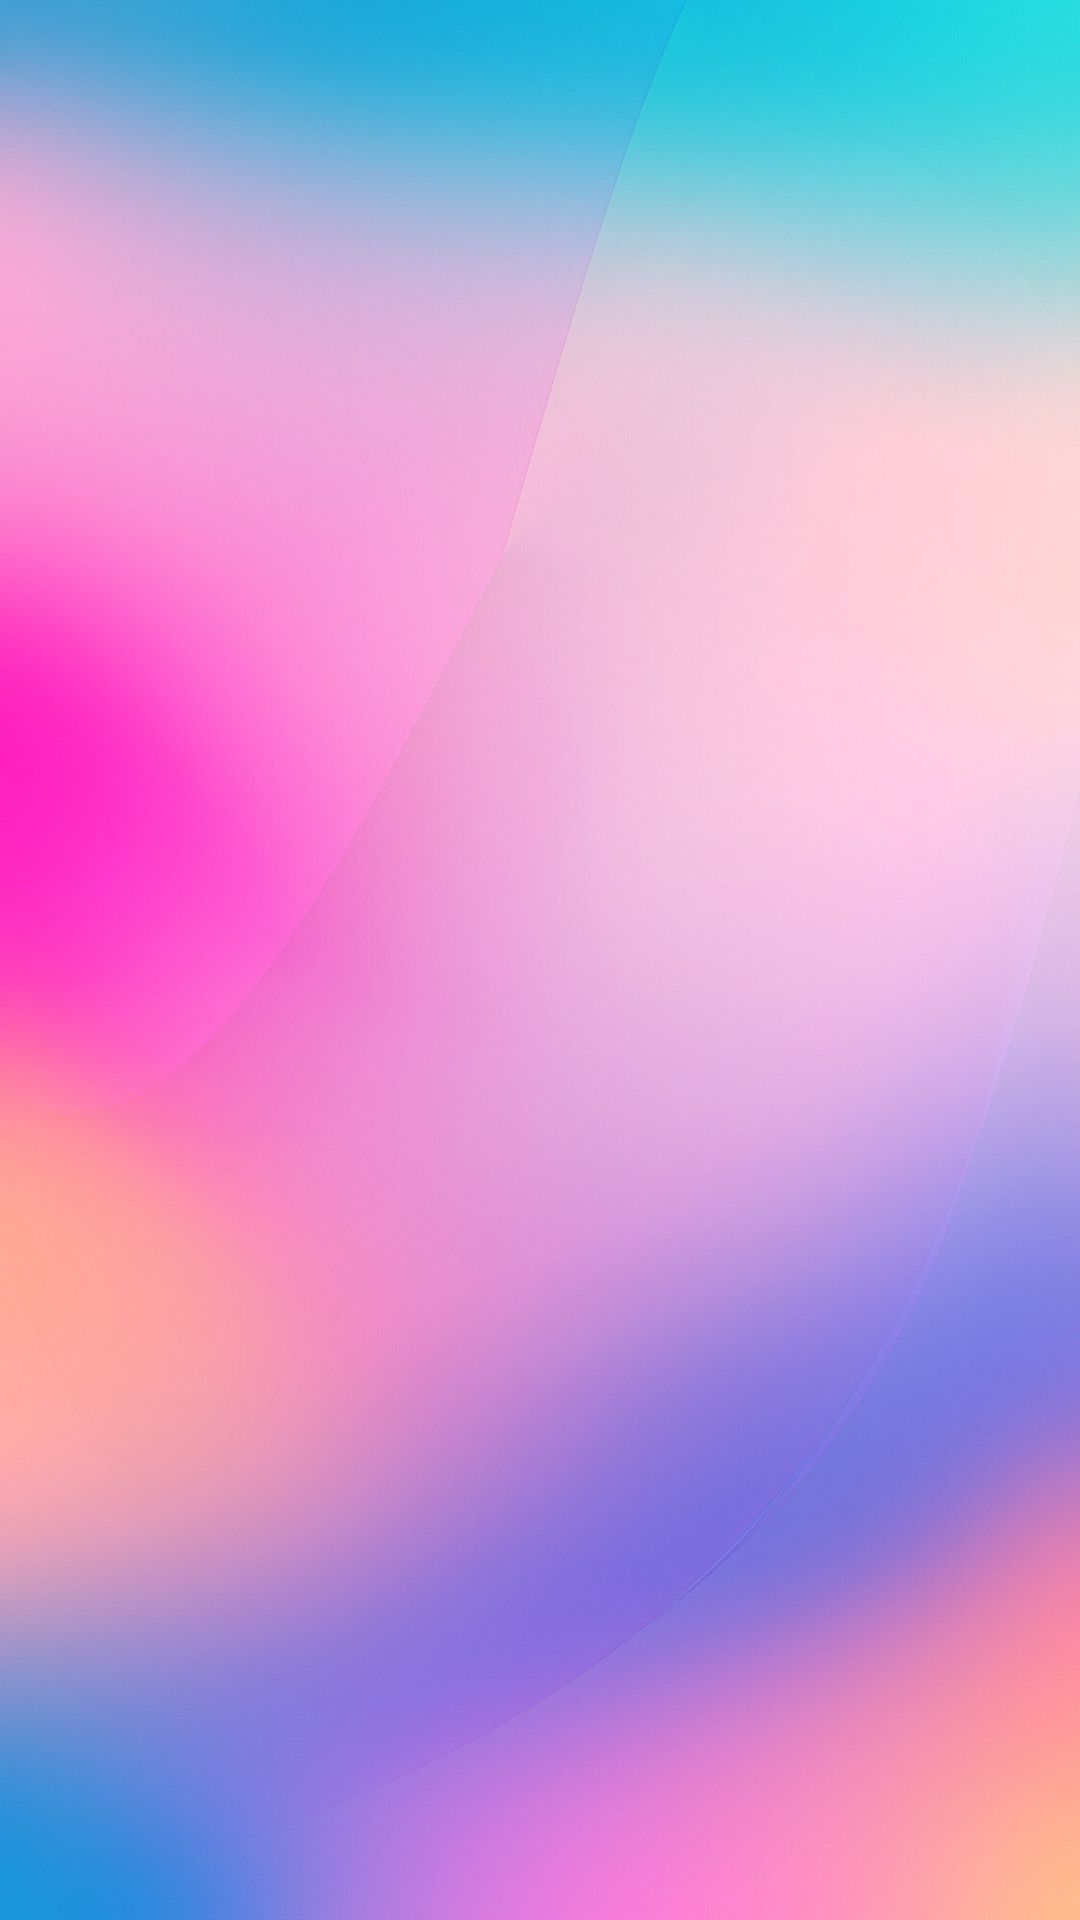 Abstract wallpapers: vivid contrasting colors [pack 3]